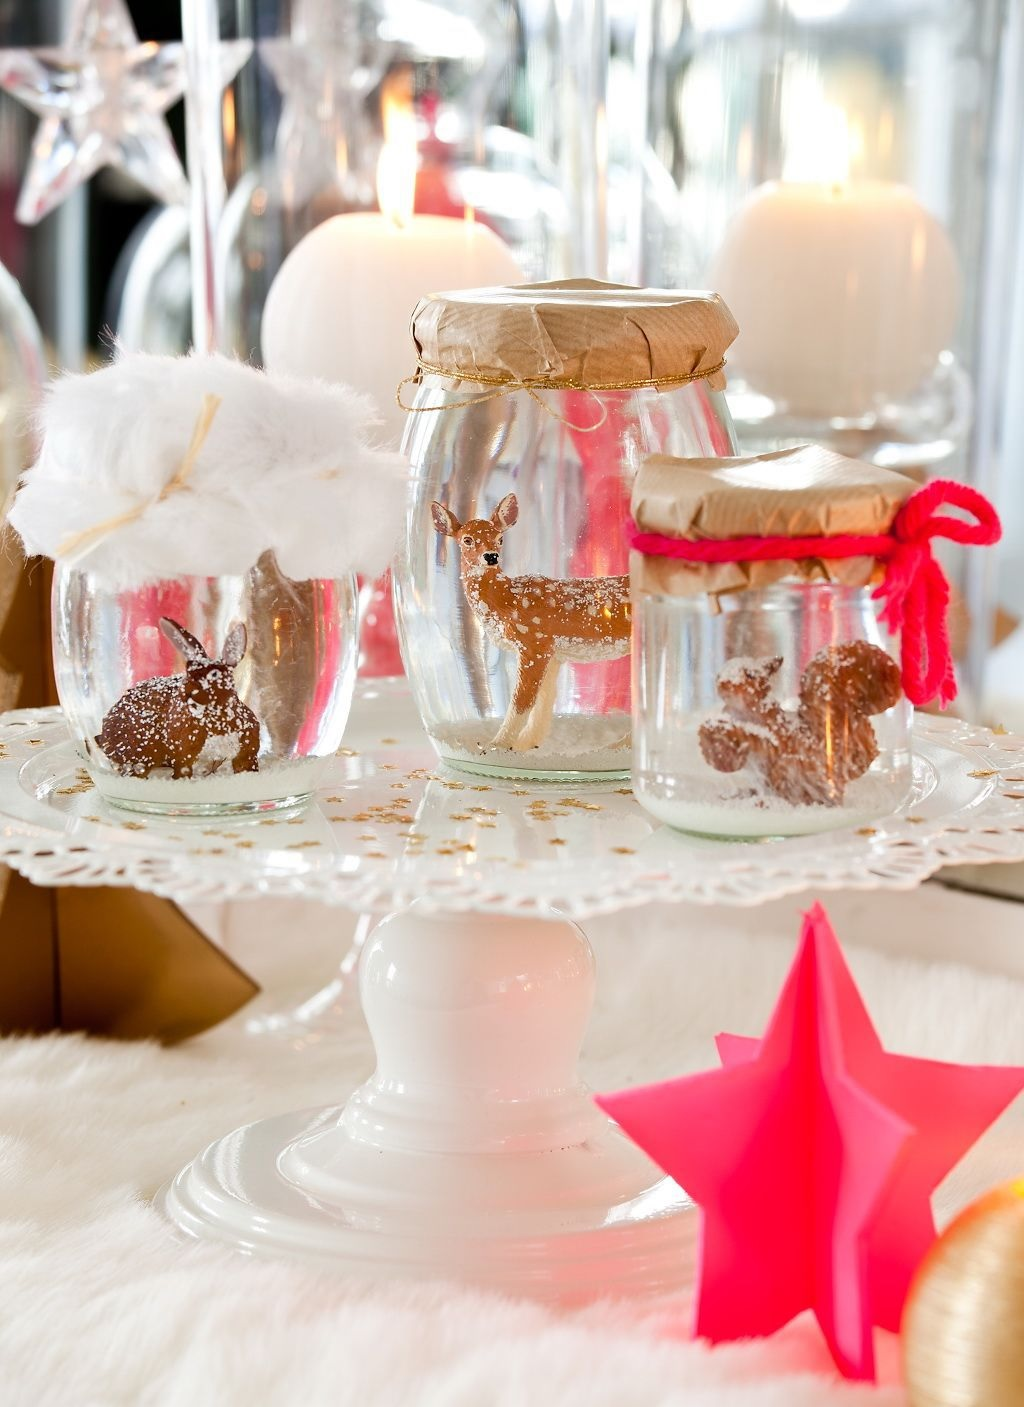 decoration-table-noel-11